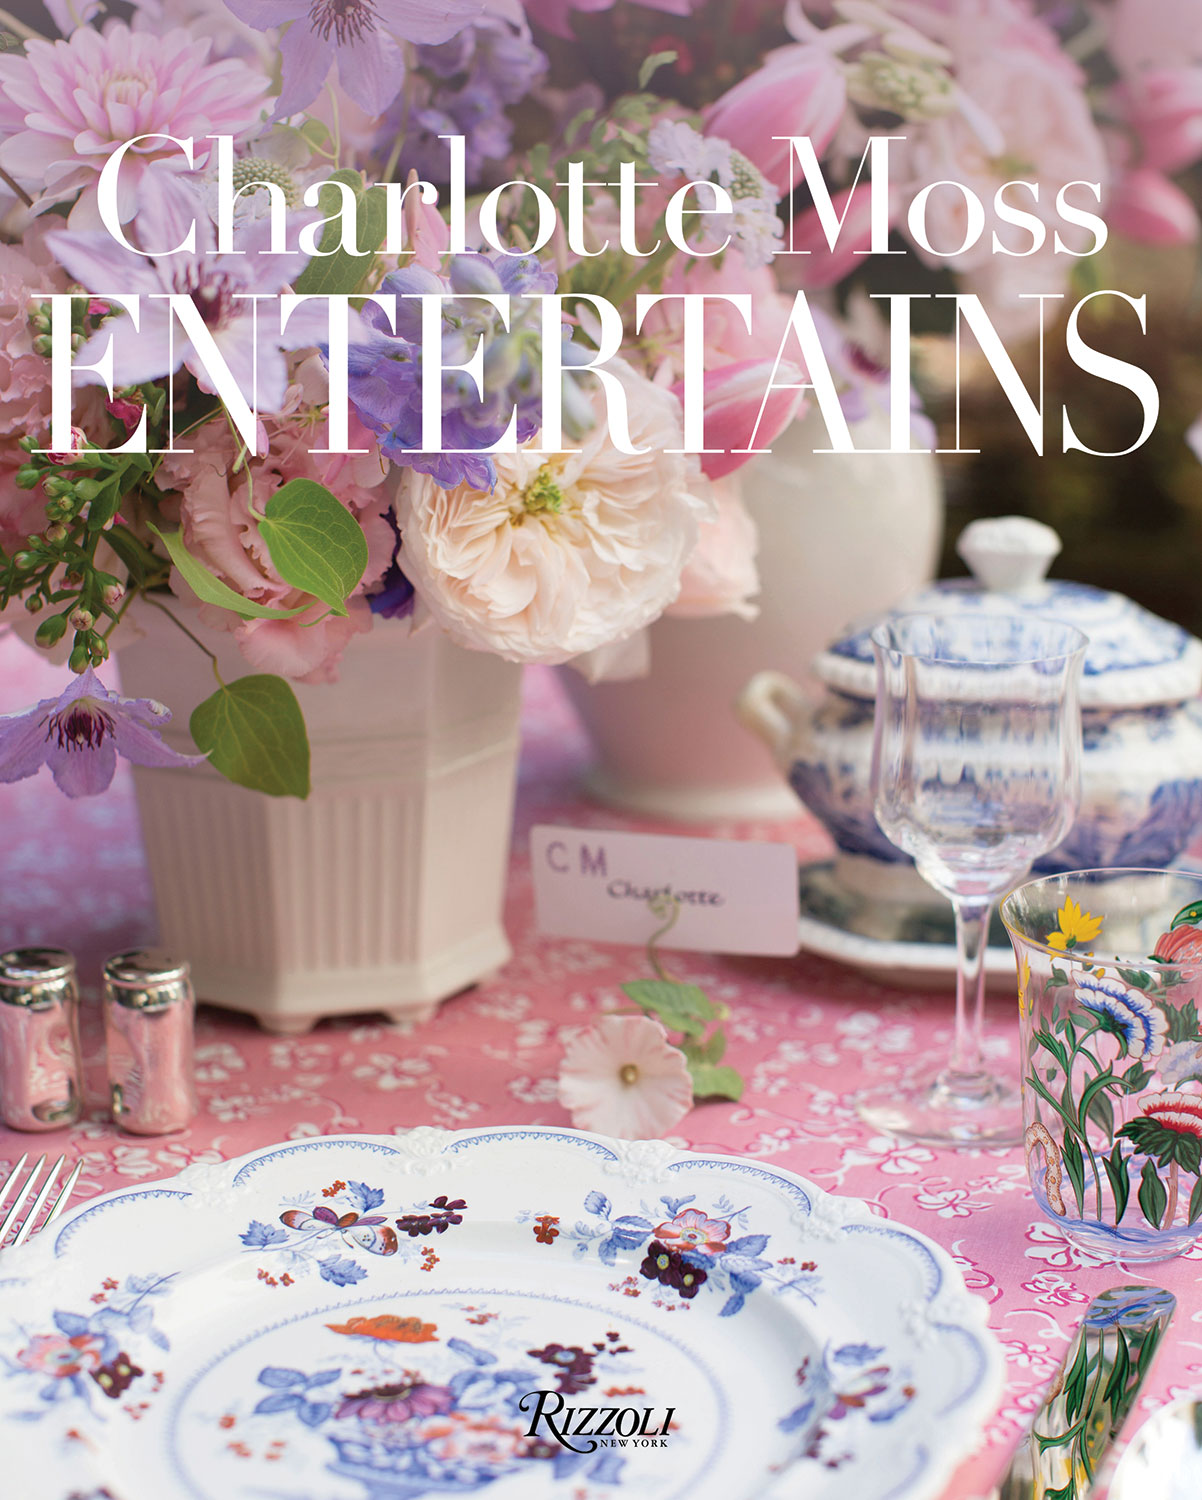 book cover for Charlotte Moss Entertains